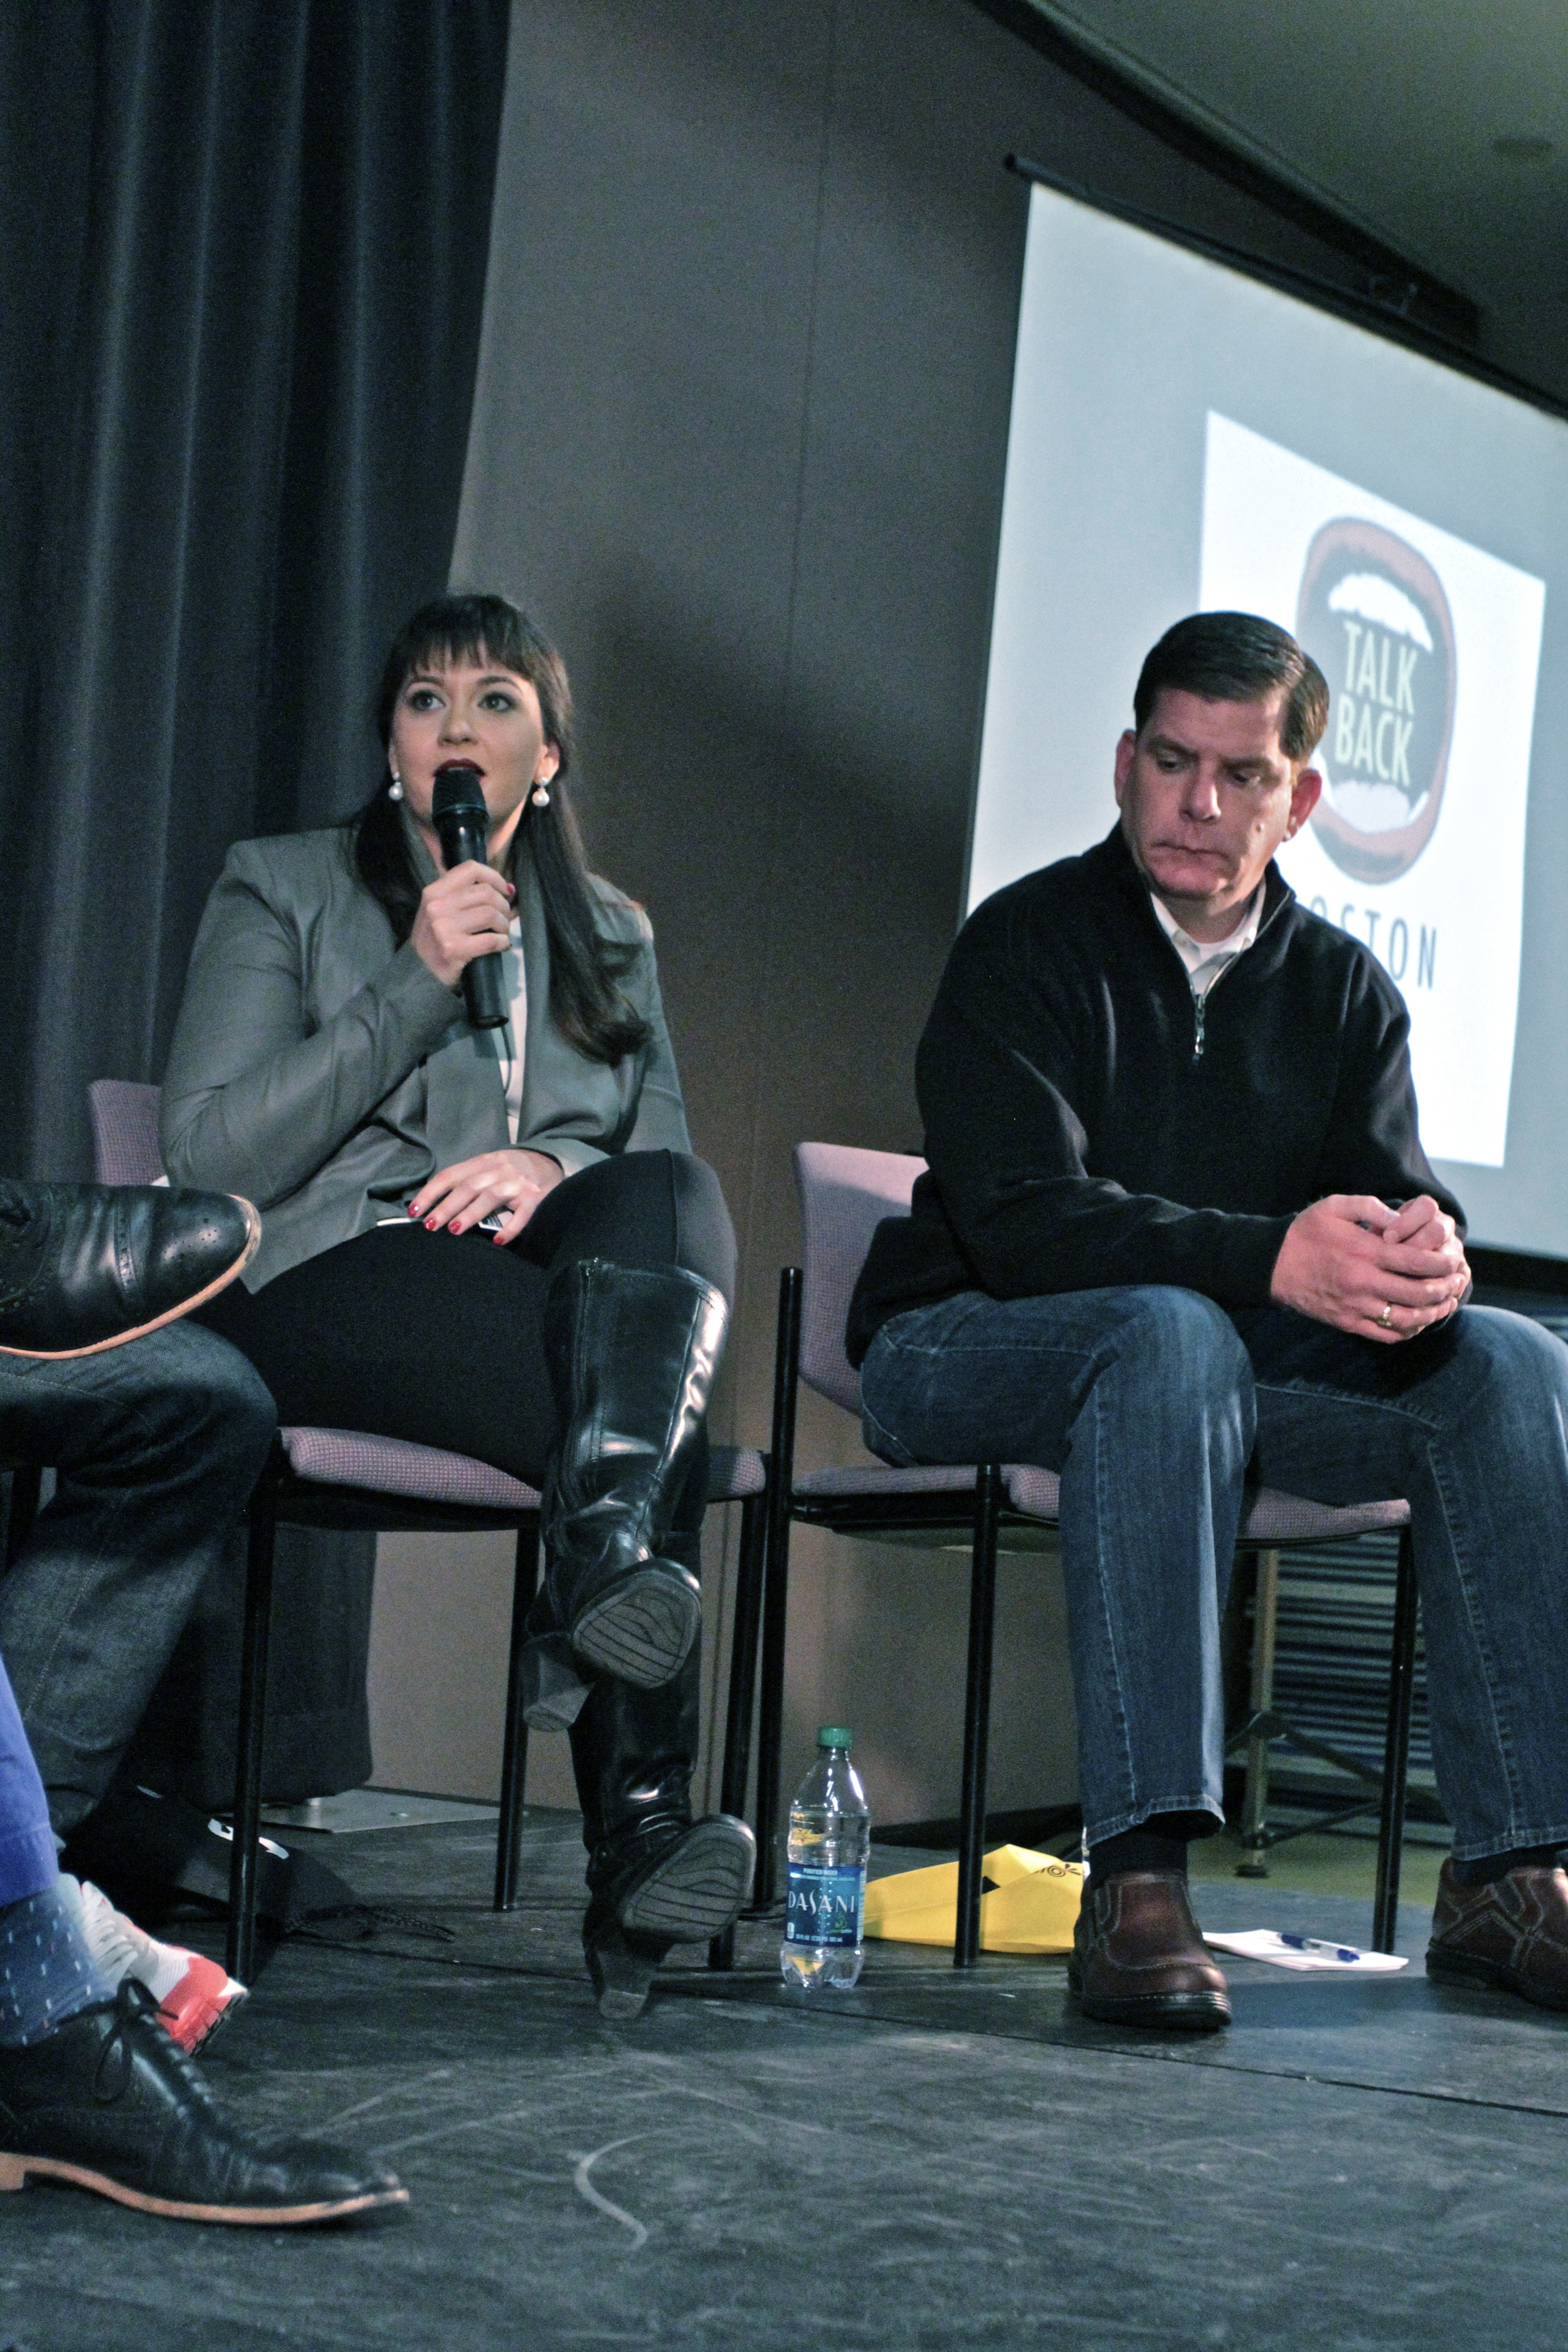 Click on the link below for Boston Globe article:   http://www.bostonglobe.com/metro/2014/04/05/mayor-walsh-addresses-urges-young-people-entrepreneurialabout-business-boston/qpbufBnZEo2ij5AGFdr4mK/story.html?s_campaign=8315